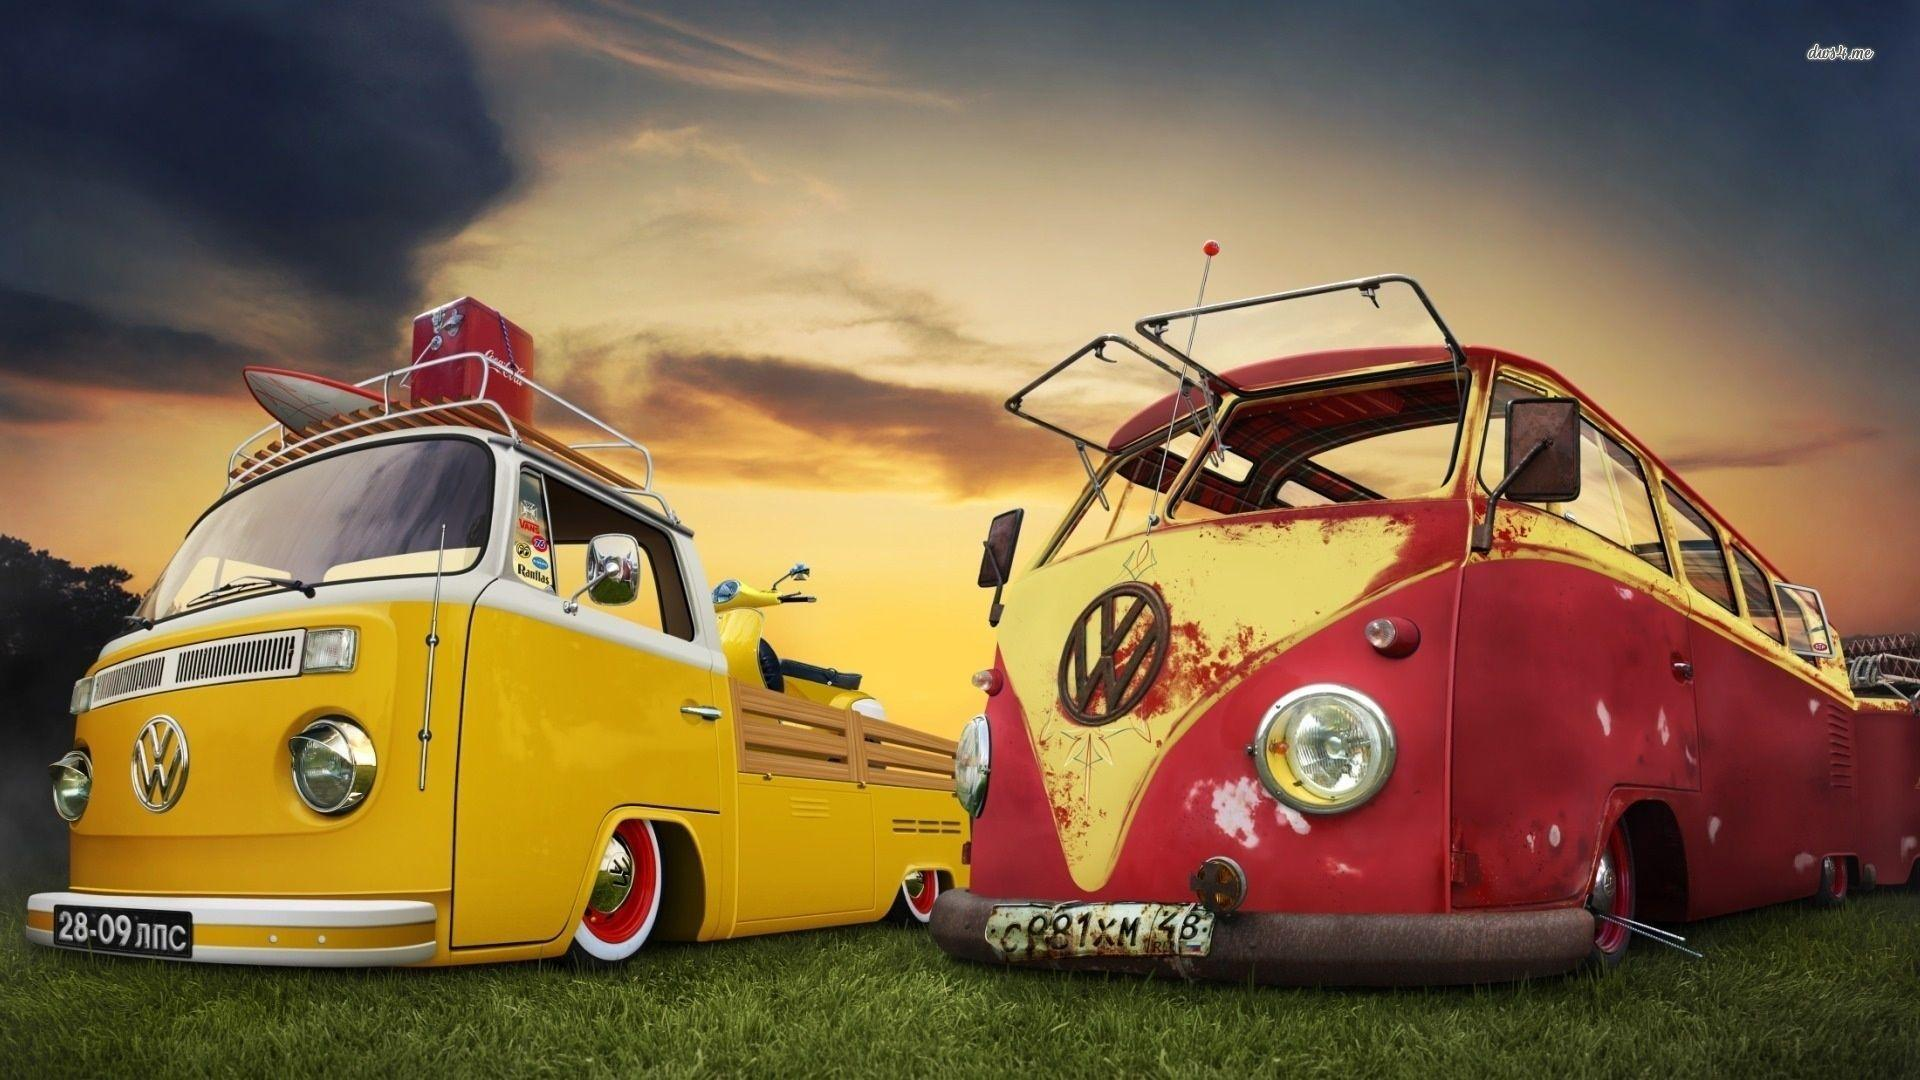 Volkswagen Bus Wallpapers Phone